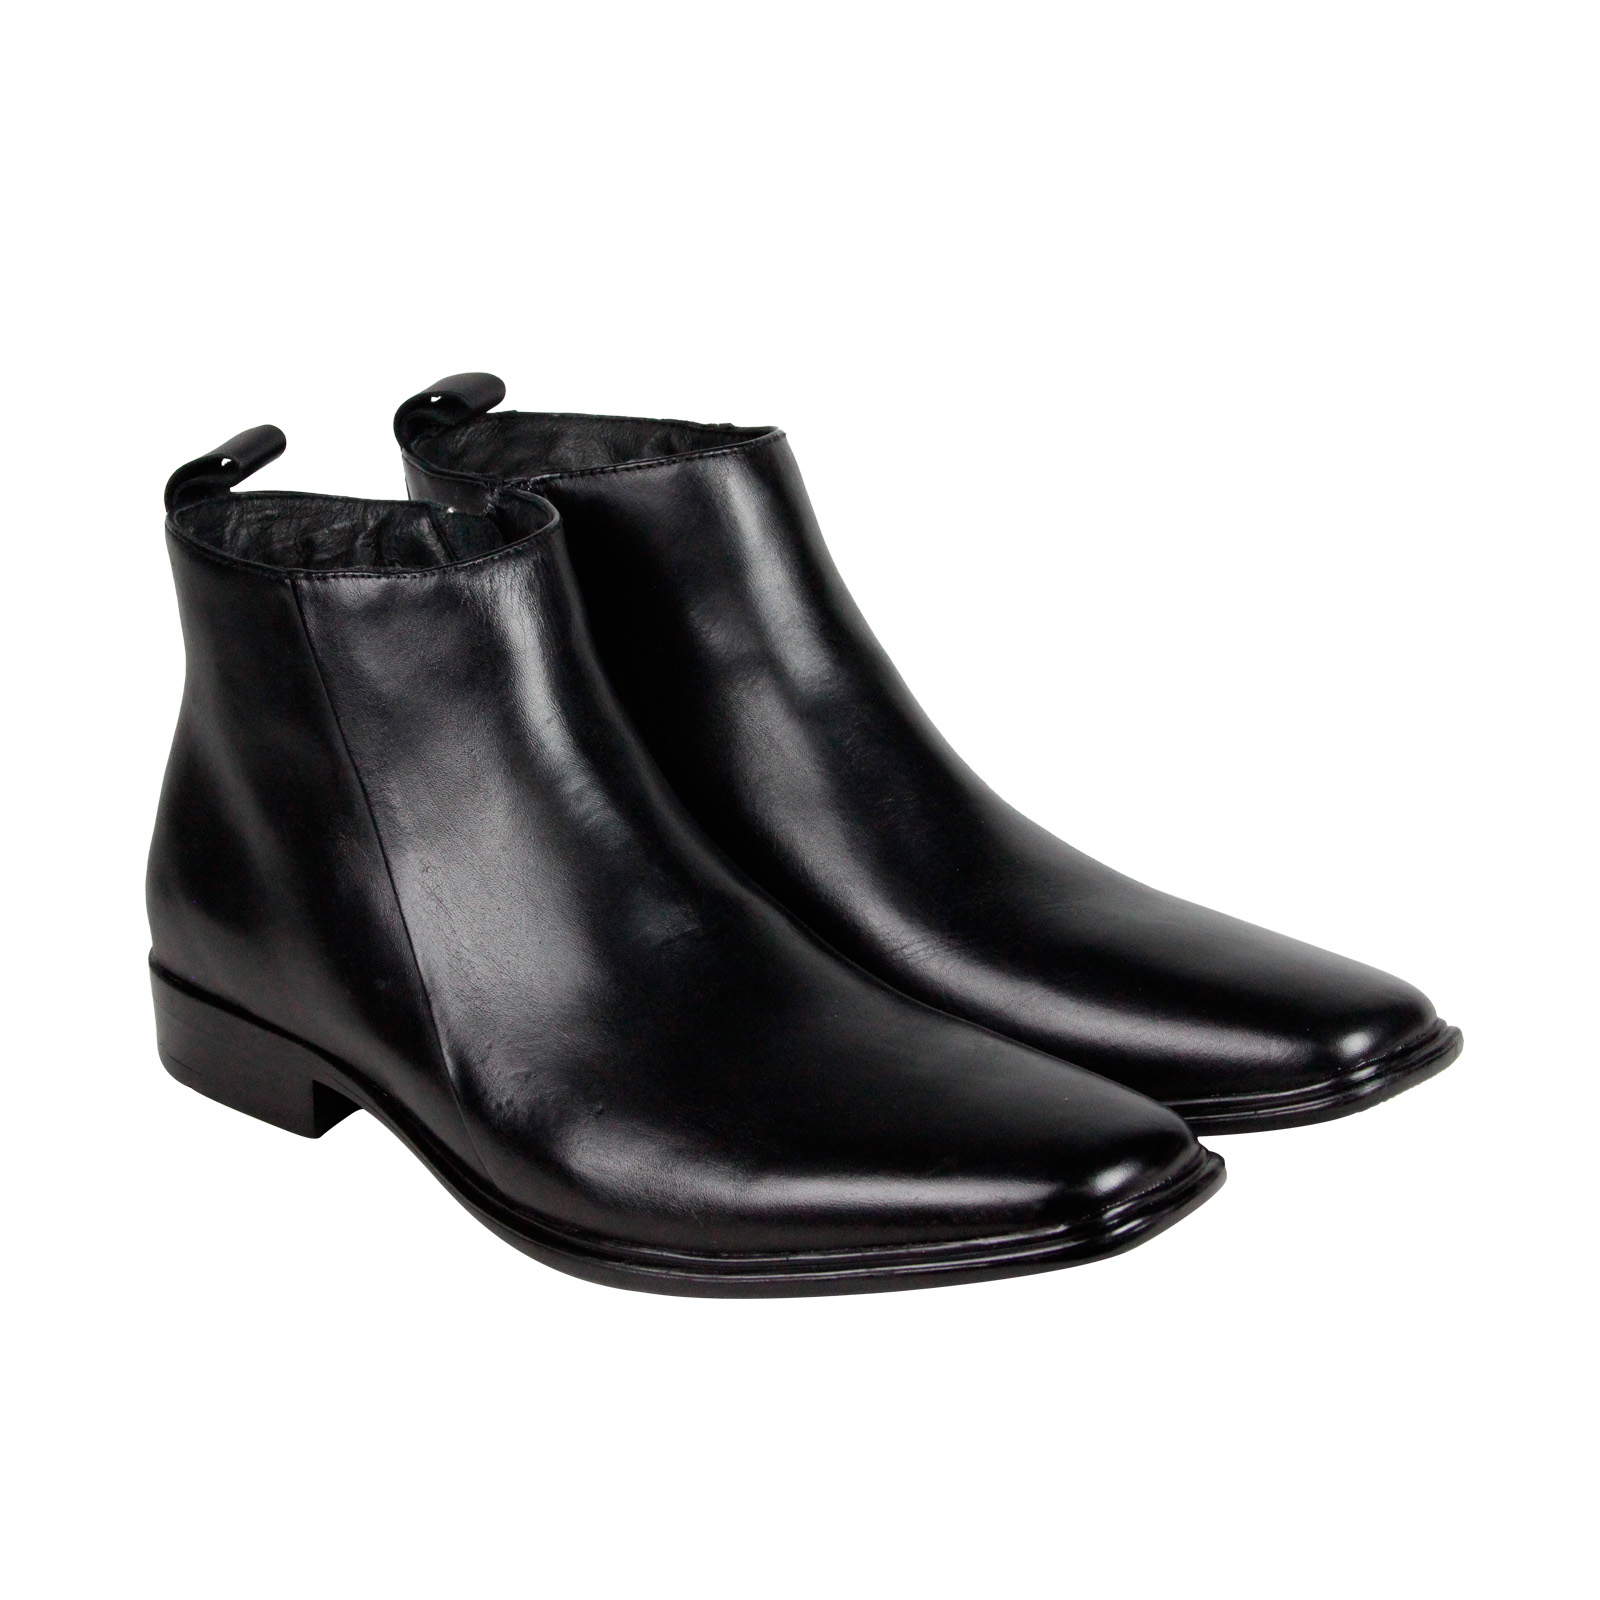 Mark Nason Skechers Camber Mens Black Leather Casual Dress Boots Shoes by Mark Nason